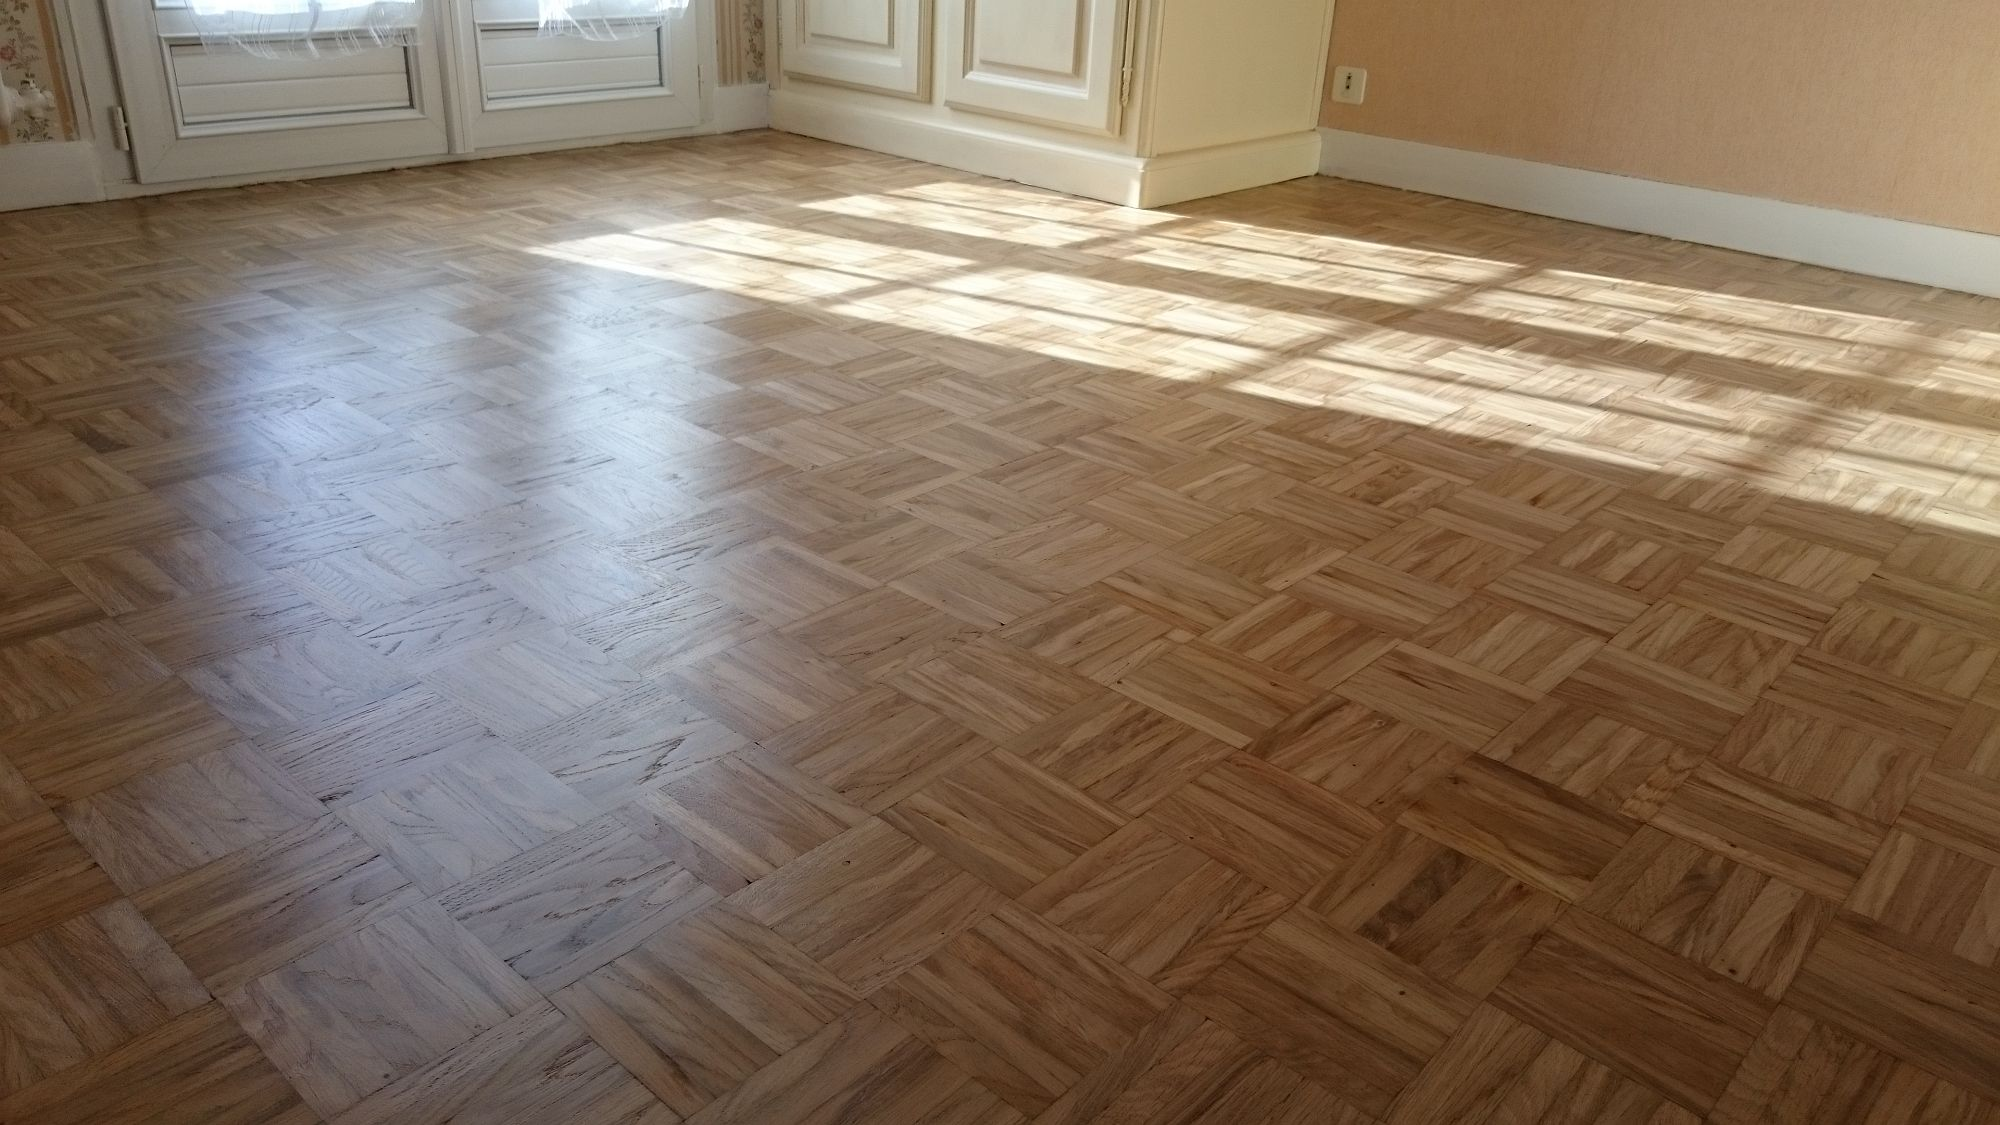 Poncer Un Parquet La Confortable Poncer Un Parquet Opens Arm At